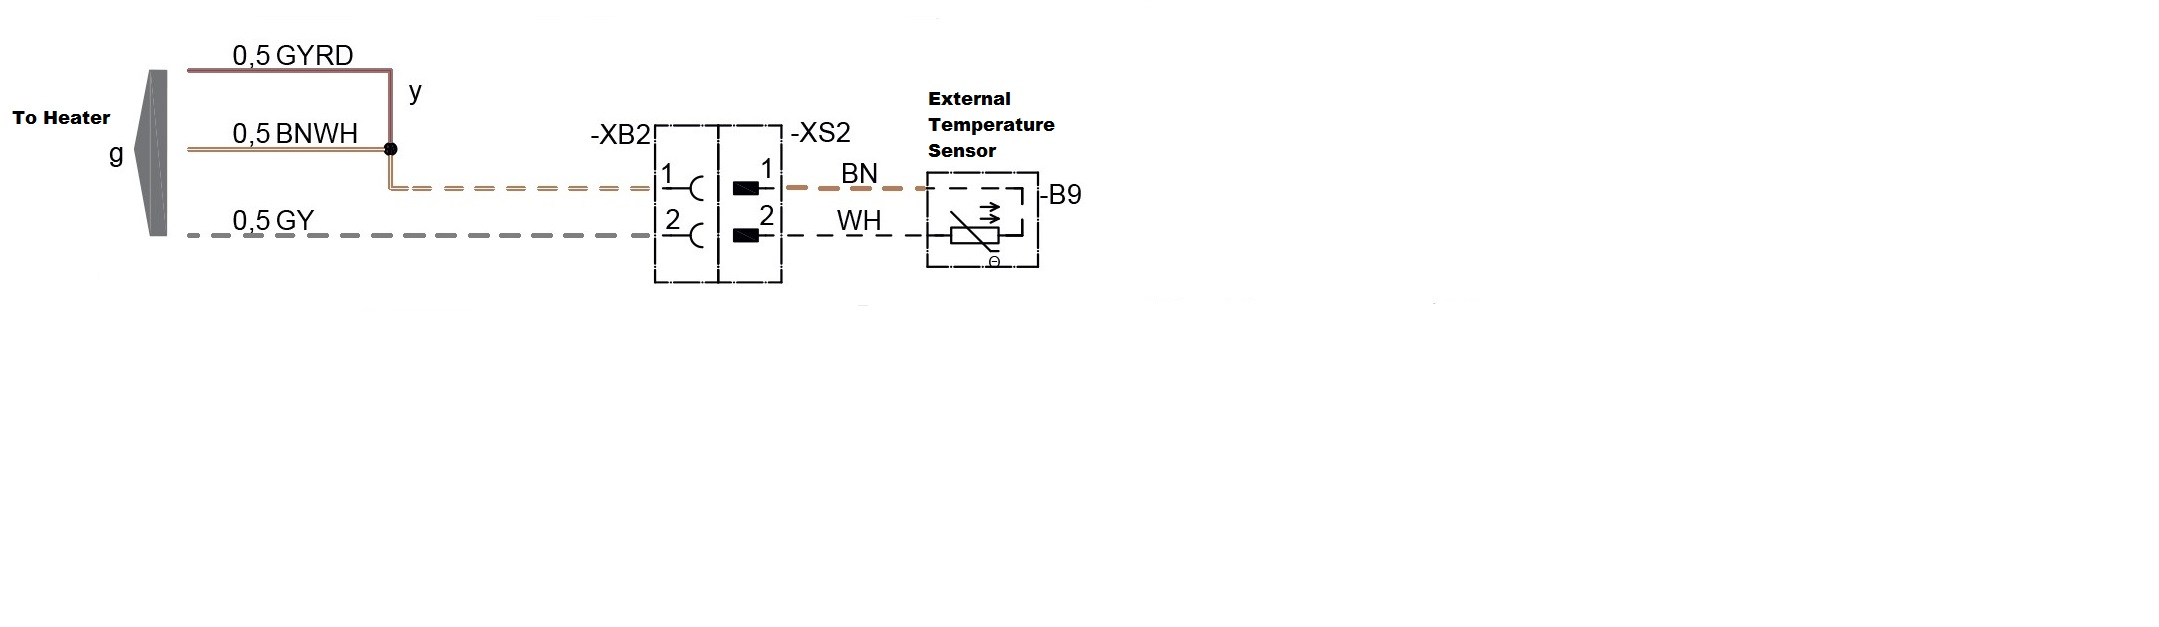 Wiring Diagrams Webasto Thermo Top C Diagram External Temperature Sensor